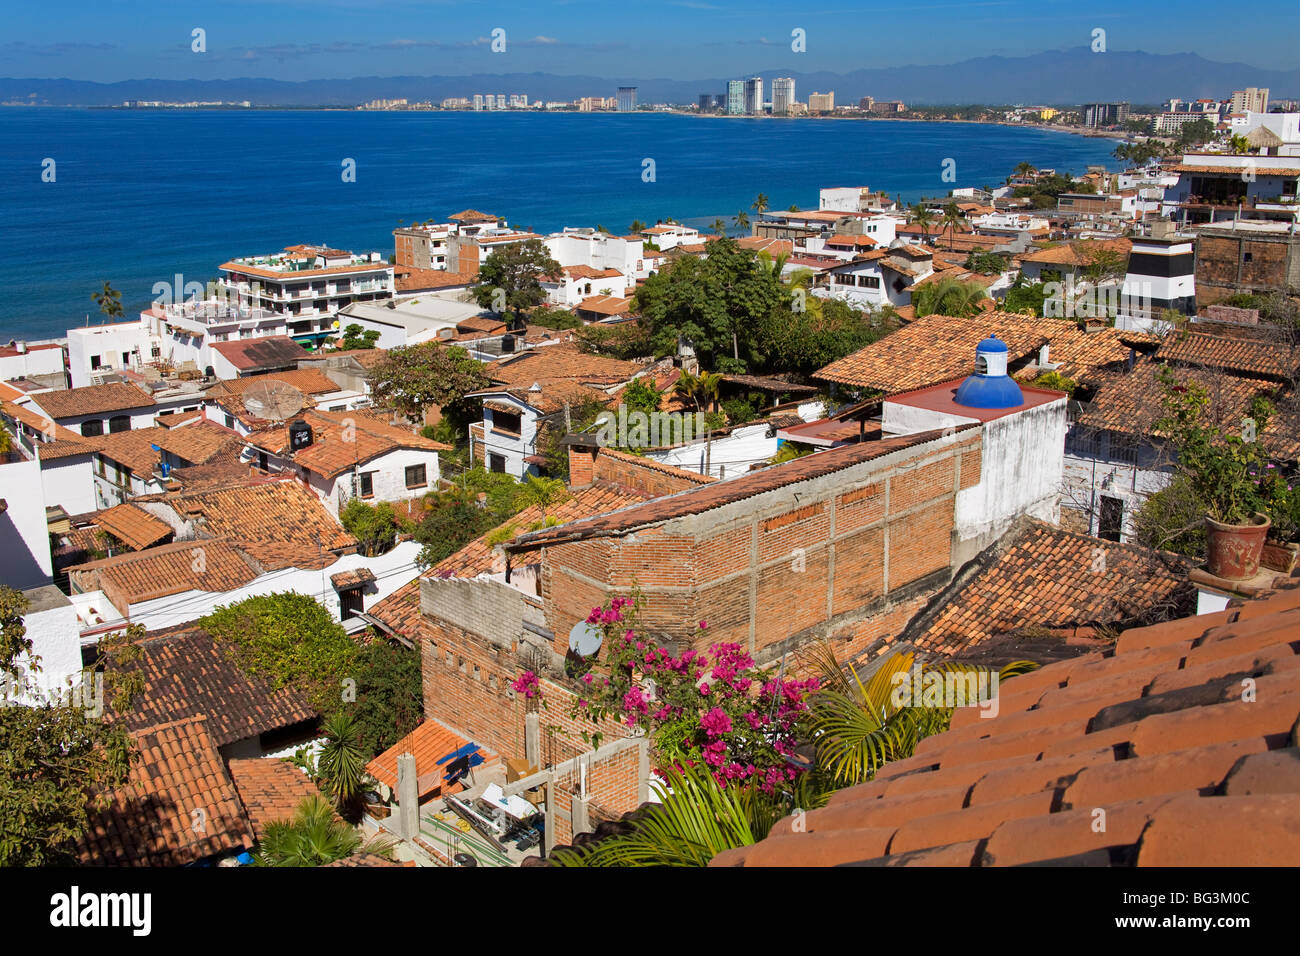 Tiled roofs, Puerto Vallarta, Jalisco State, Mexico, North America - Stock Image